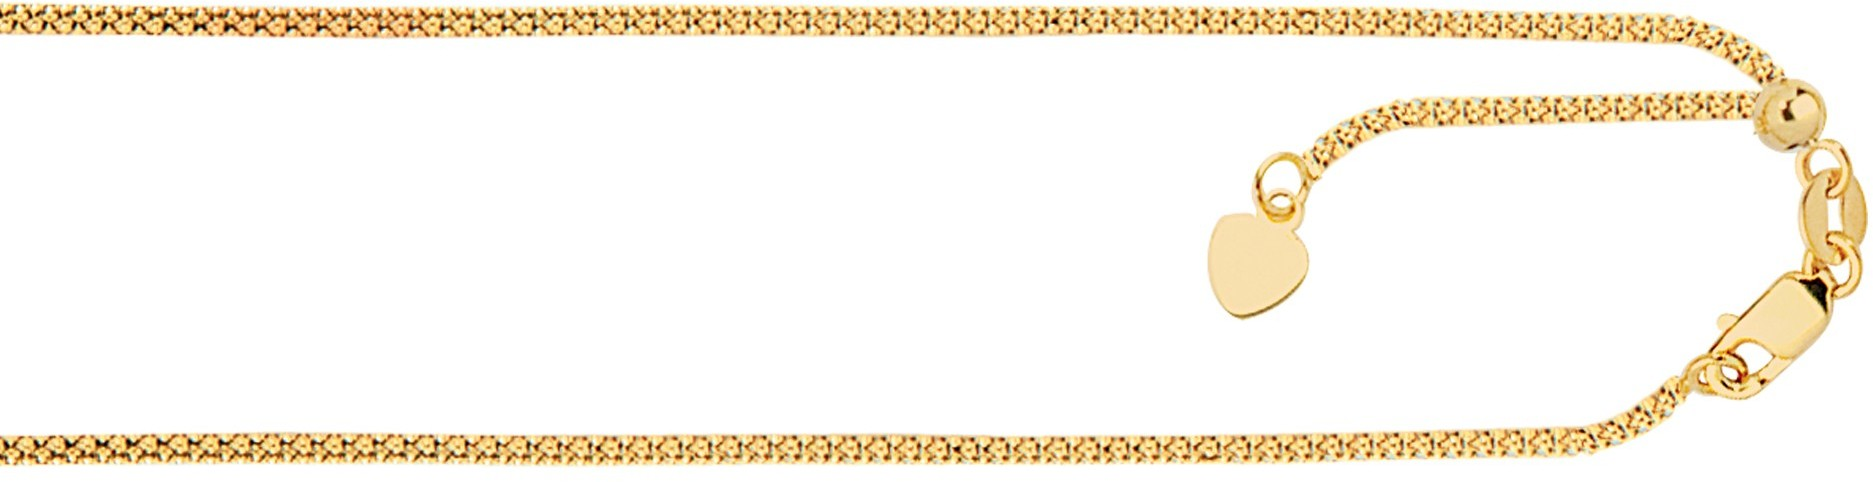 "22"" 14K Yellow Gold 1.3mm (0.05"") Polished Diamond Cut Adjustable Popcorn Chain w/ Lobster Clasp & Small Heart Charm"